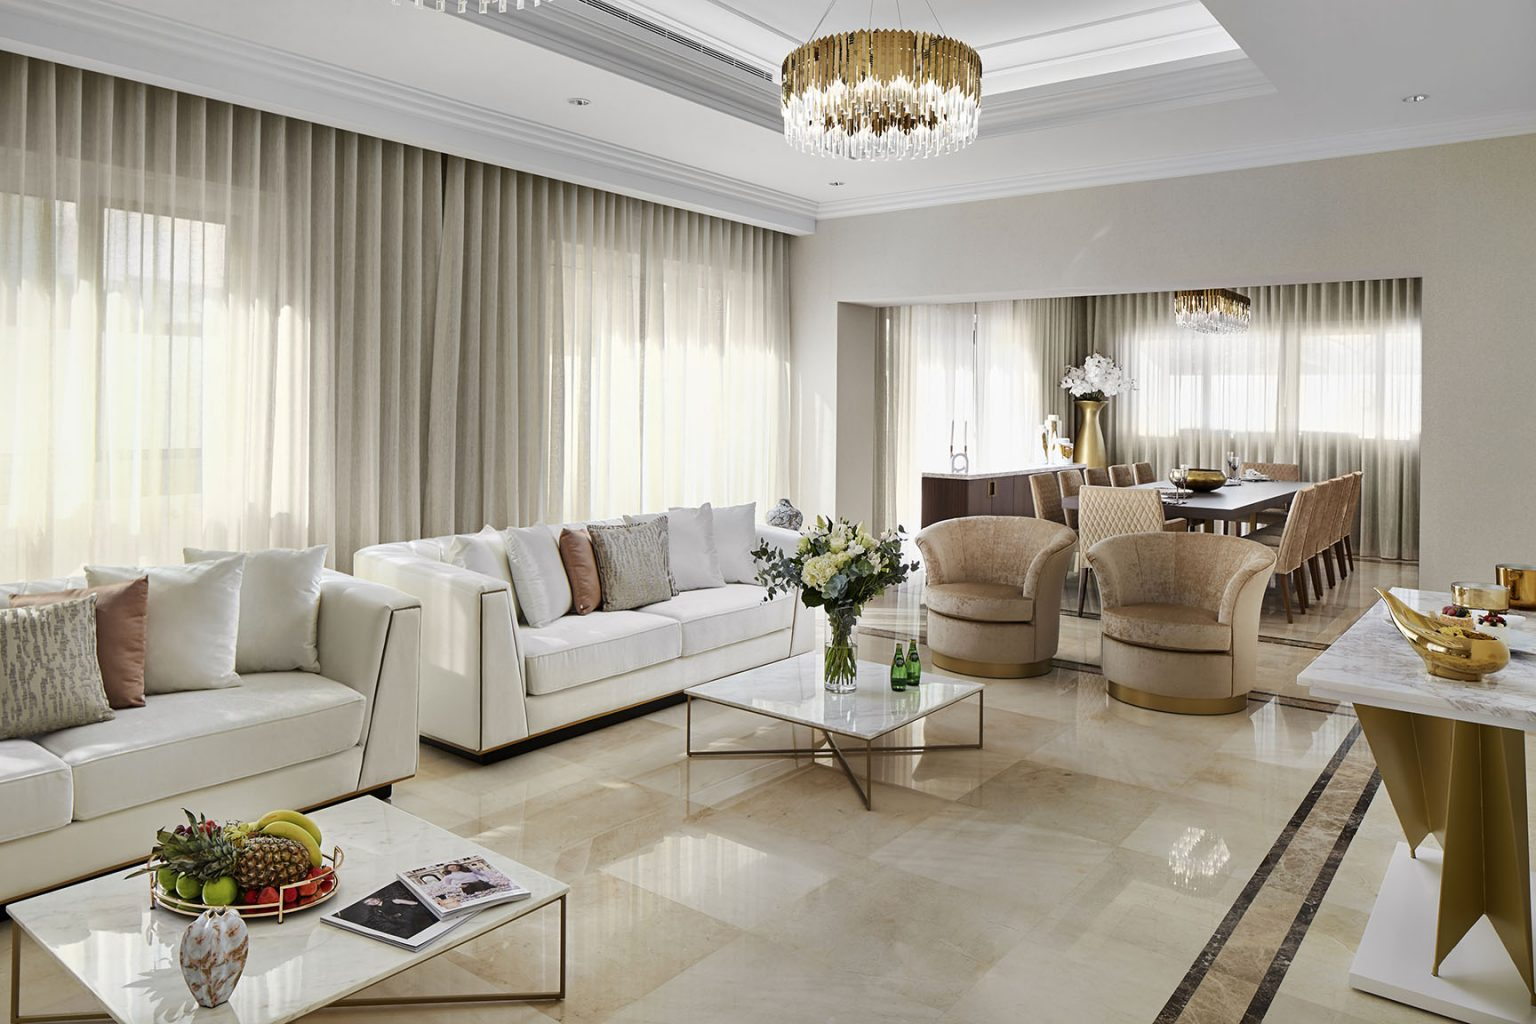 Discover the Top 20 Sharjah Interior Designers! interior designers Discover the Top 20 Sharjah Interior Designers! Discover the Top 20 Sharjah Interior Designers 20